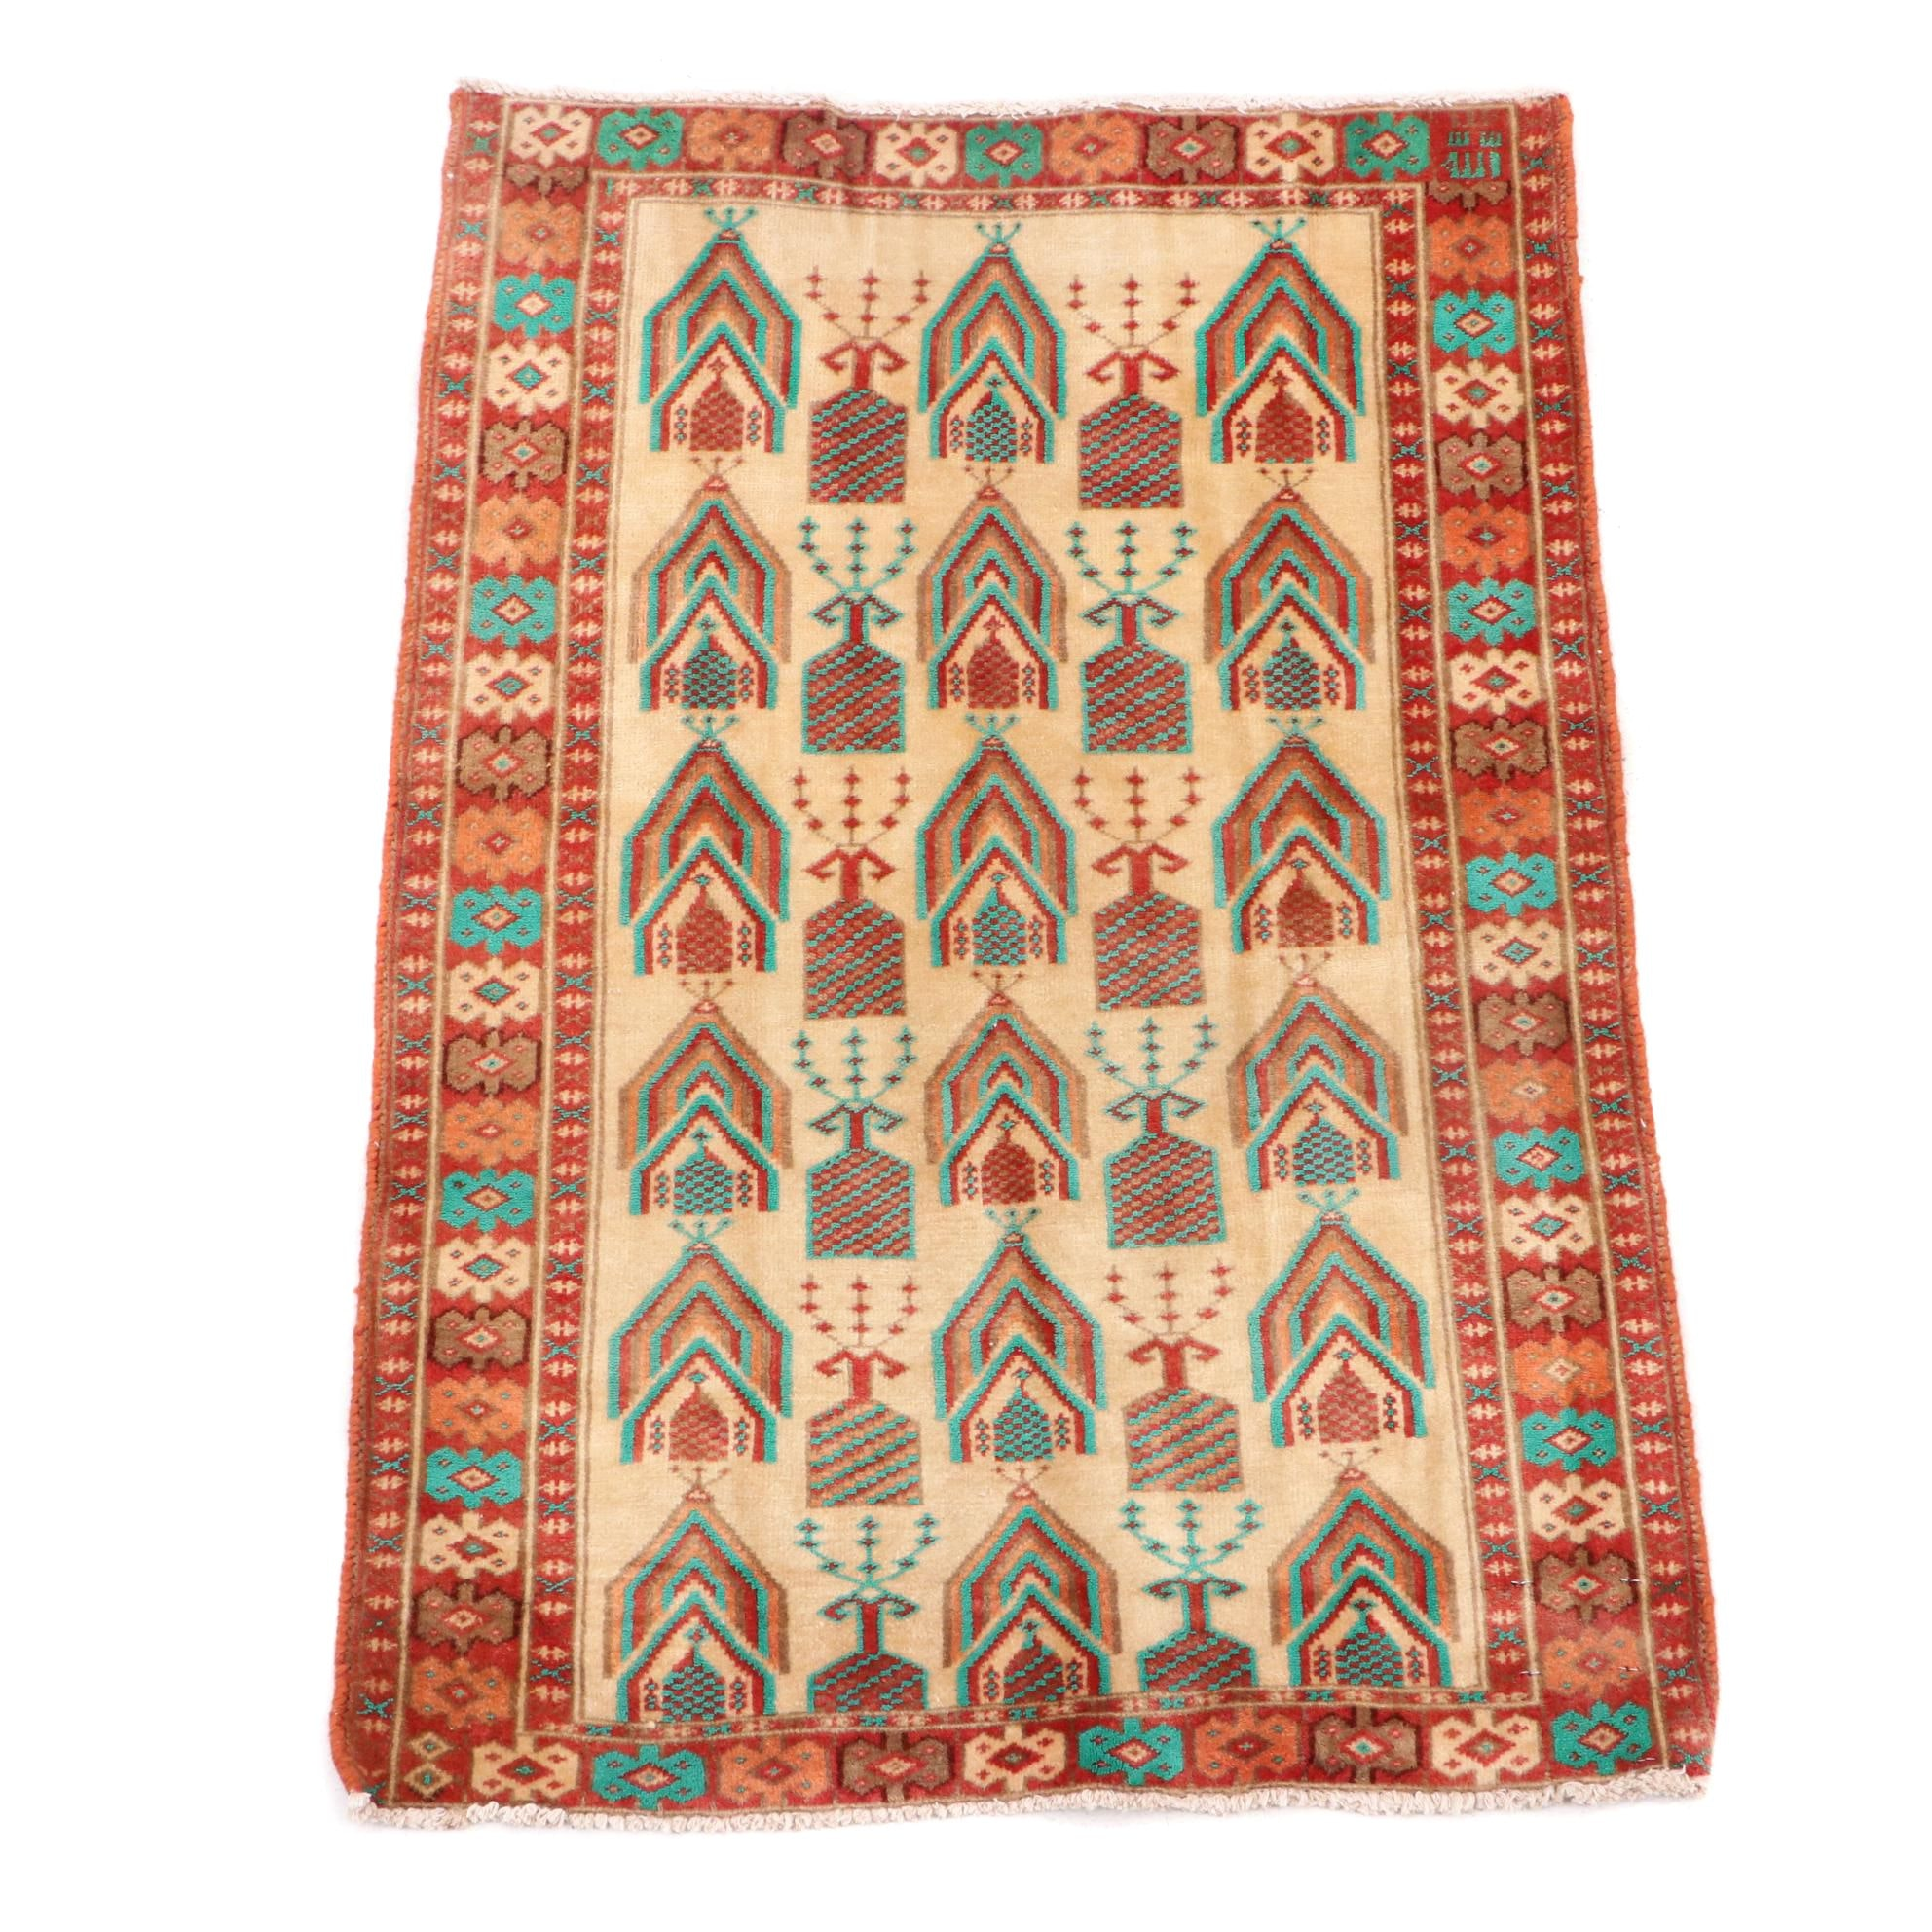 Hand-Knotted Turkmen Rug (Attributed)